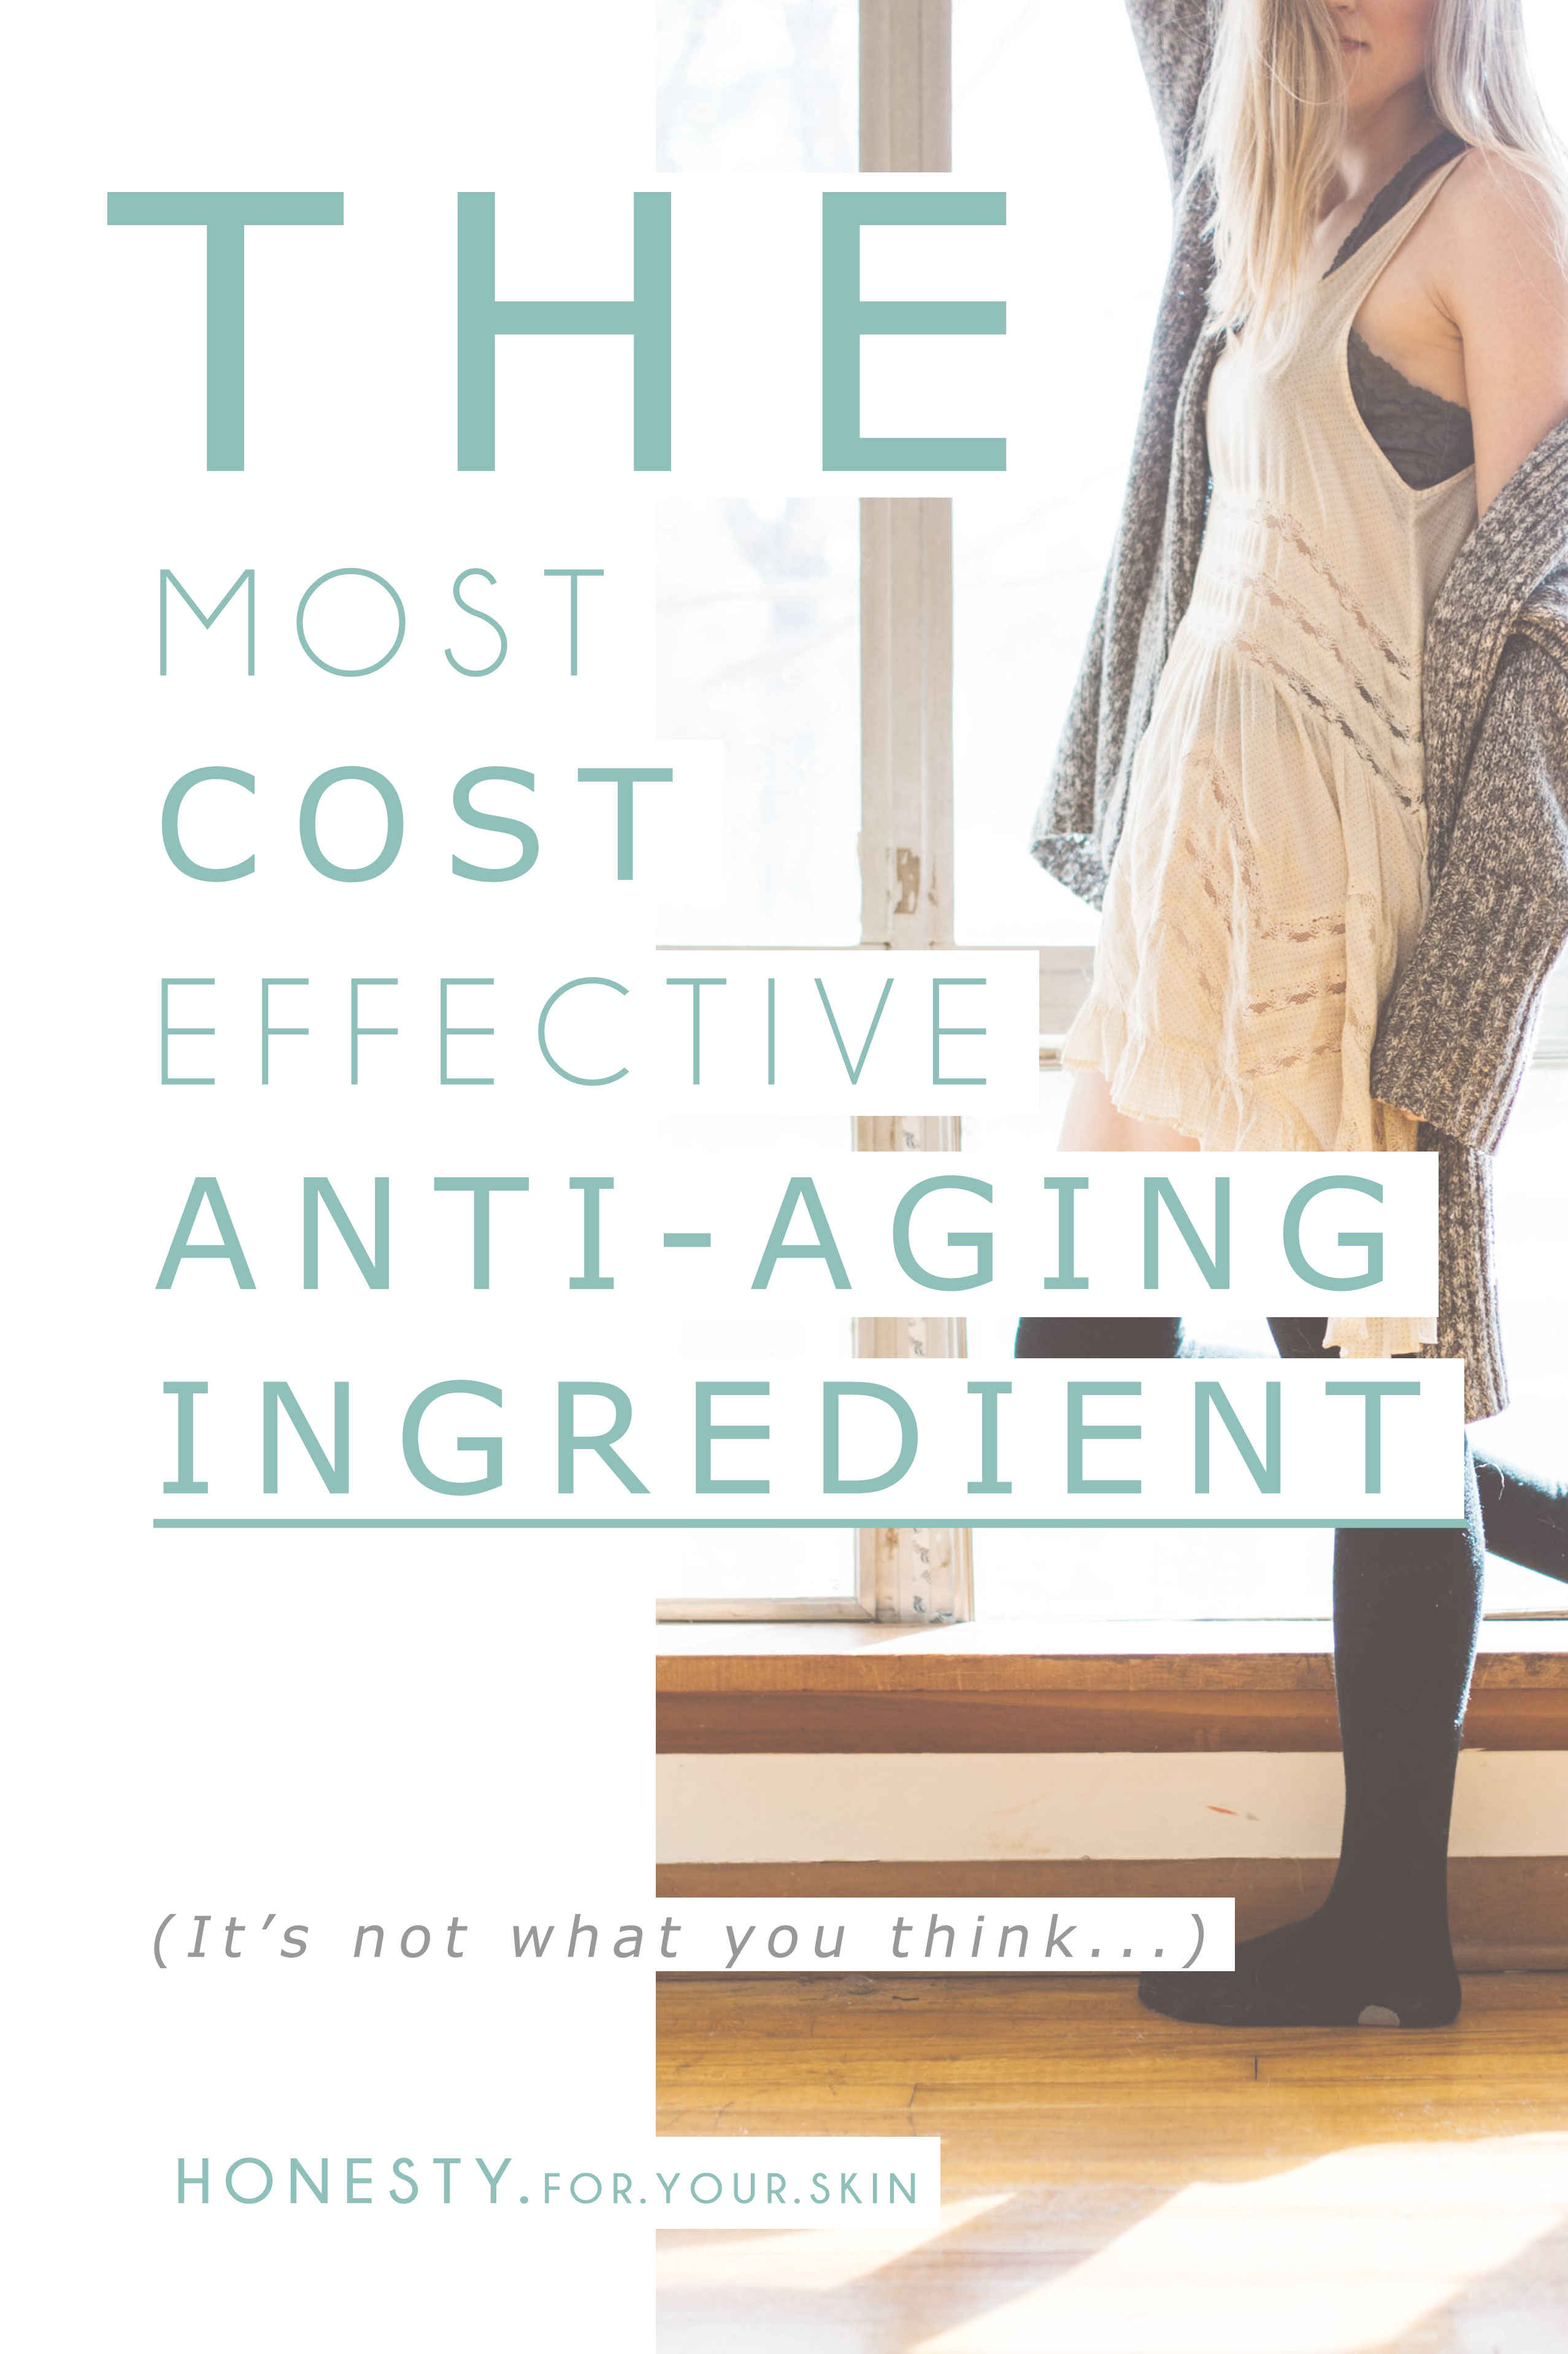 Anti-aging skincare is a MASSIVE market and big skincare giants are always on the hunt for new finds that plump out wrinkles, banish fine lines to an artists sketch pad and brighten those 'sun posts'. There are some very well known and well researched ingredients that do wind those years backwards (vitamin A and niacinamide I am looking at you!)... but here is the thing, WHY wind back that damage when you could stop it from happening in the first place... why treat the effects when you could treat the cause... this is the most cost effective anti-aging cream you could ever use http://wp.me/p6LuQS-FO